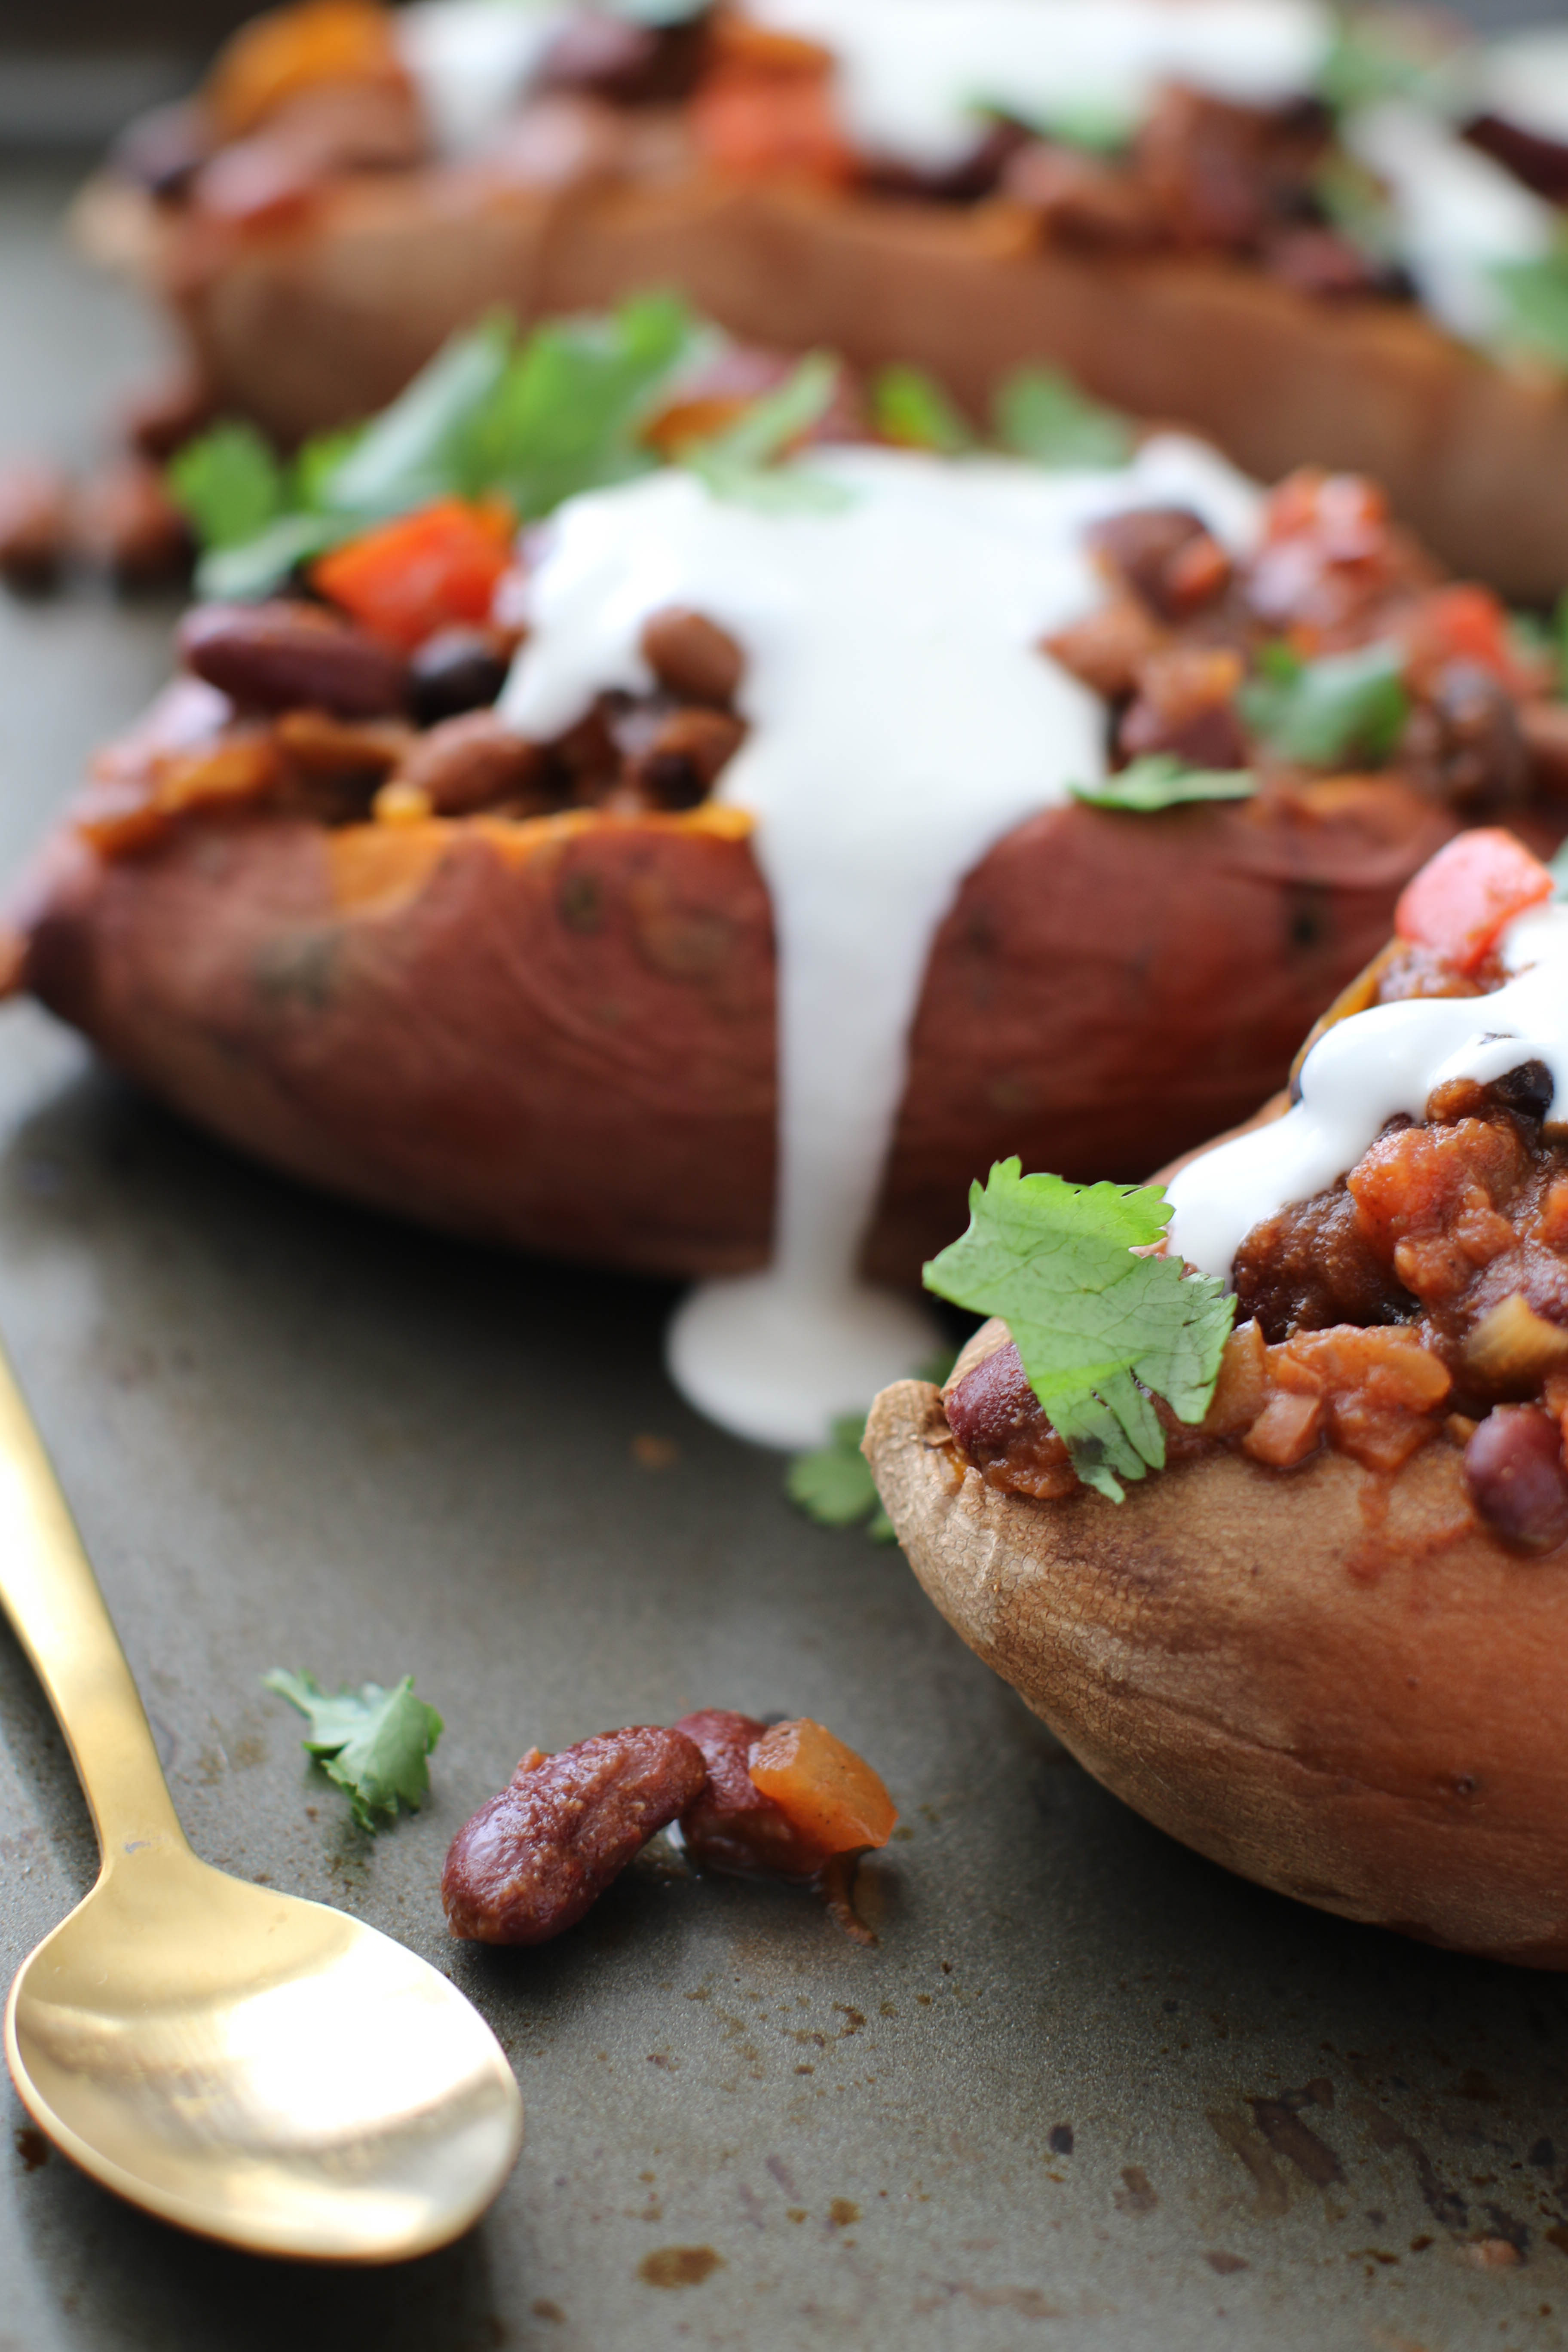 Healthy Dinner: Chili Stuffed Sweet Potatoes